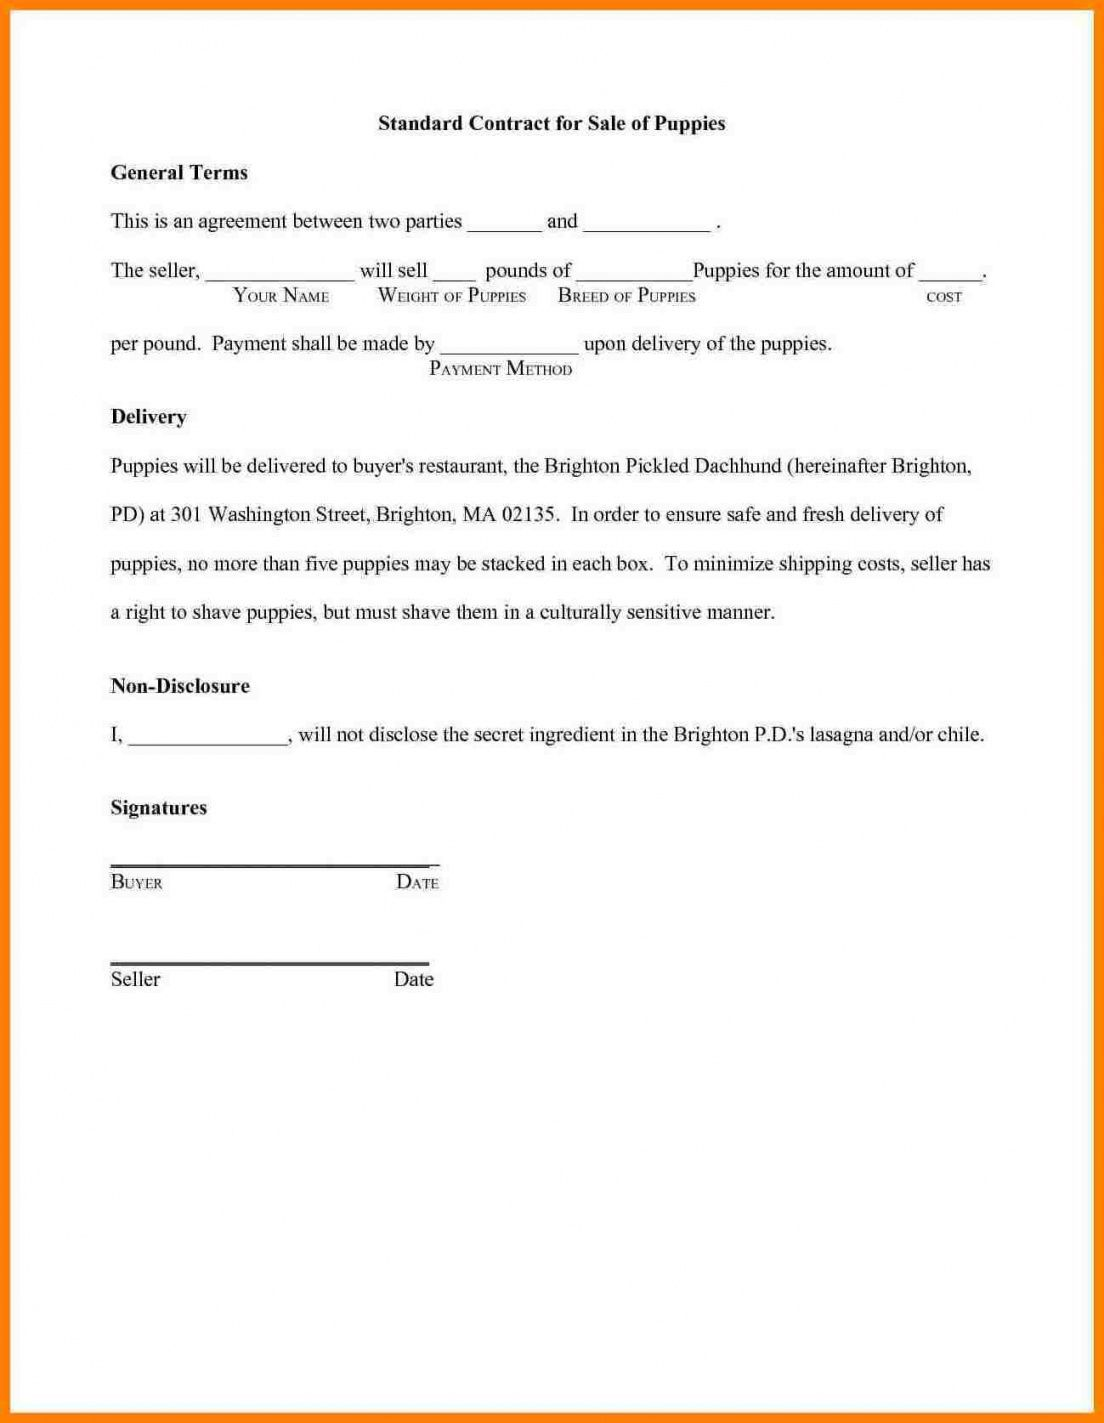 004 Simple Non Compete Agreement Template South Africa Photo Full